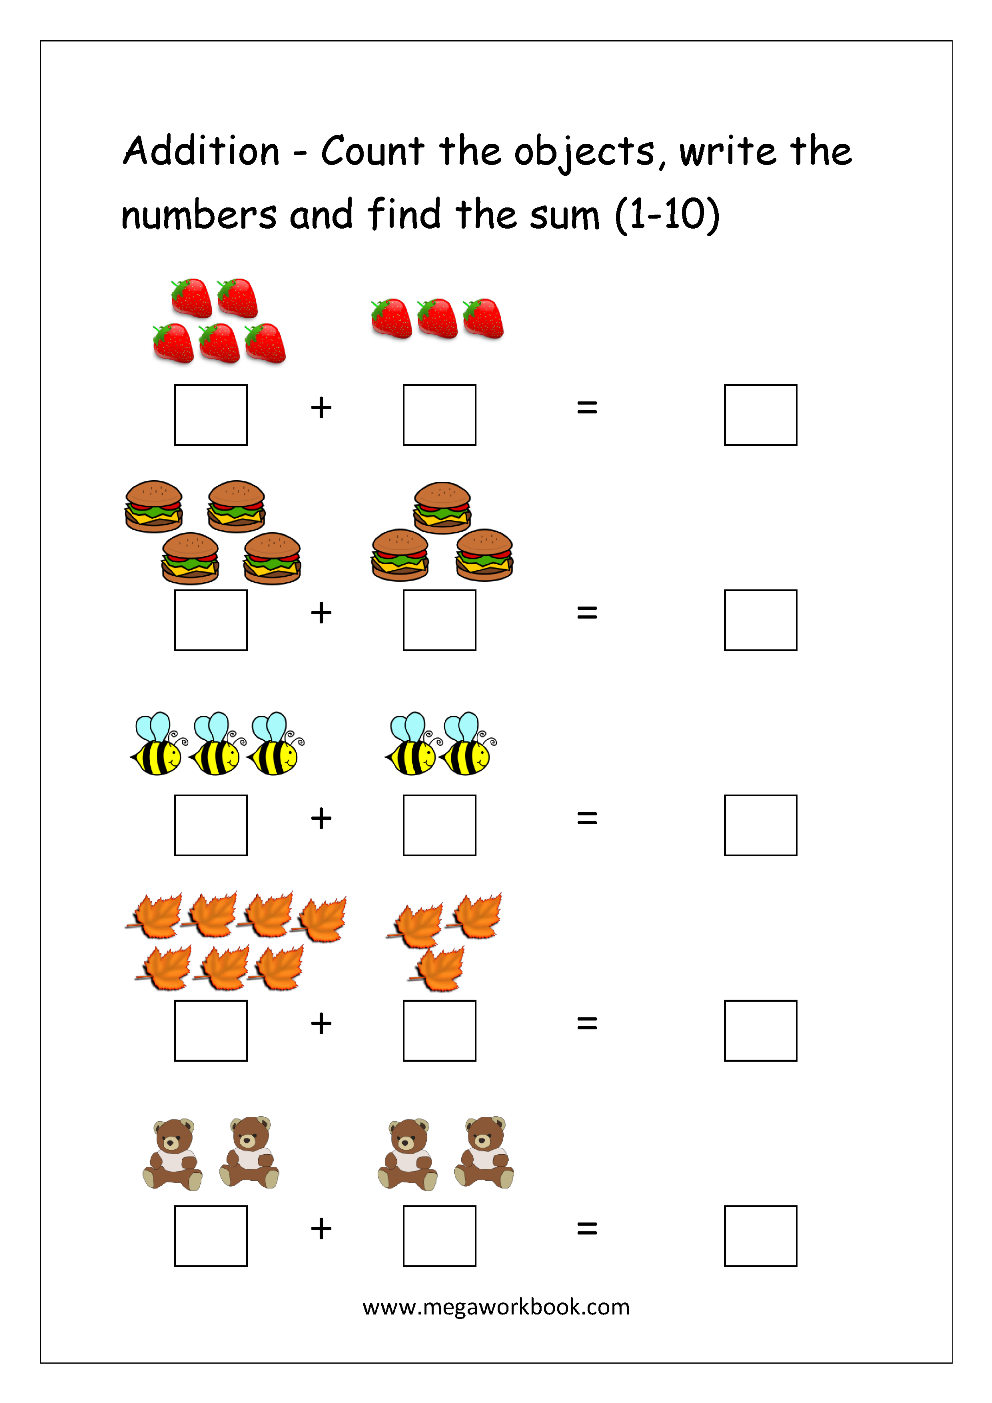 worksheet Addition Worksheets To 10 free math worksheets number addition megaworkbook worksheet using objects 1 10